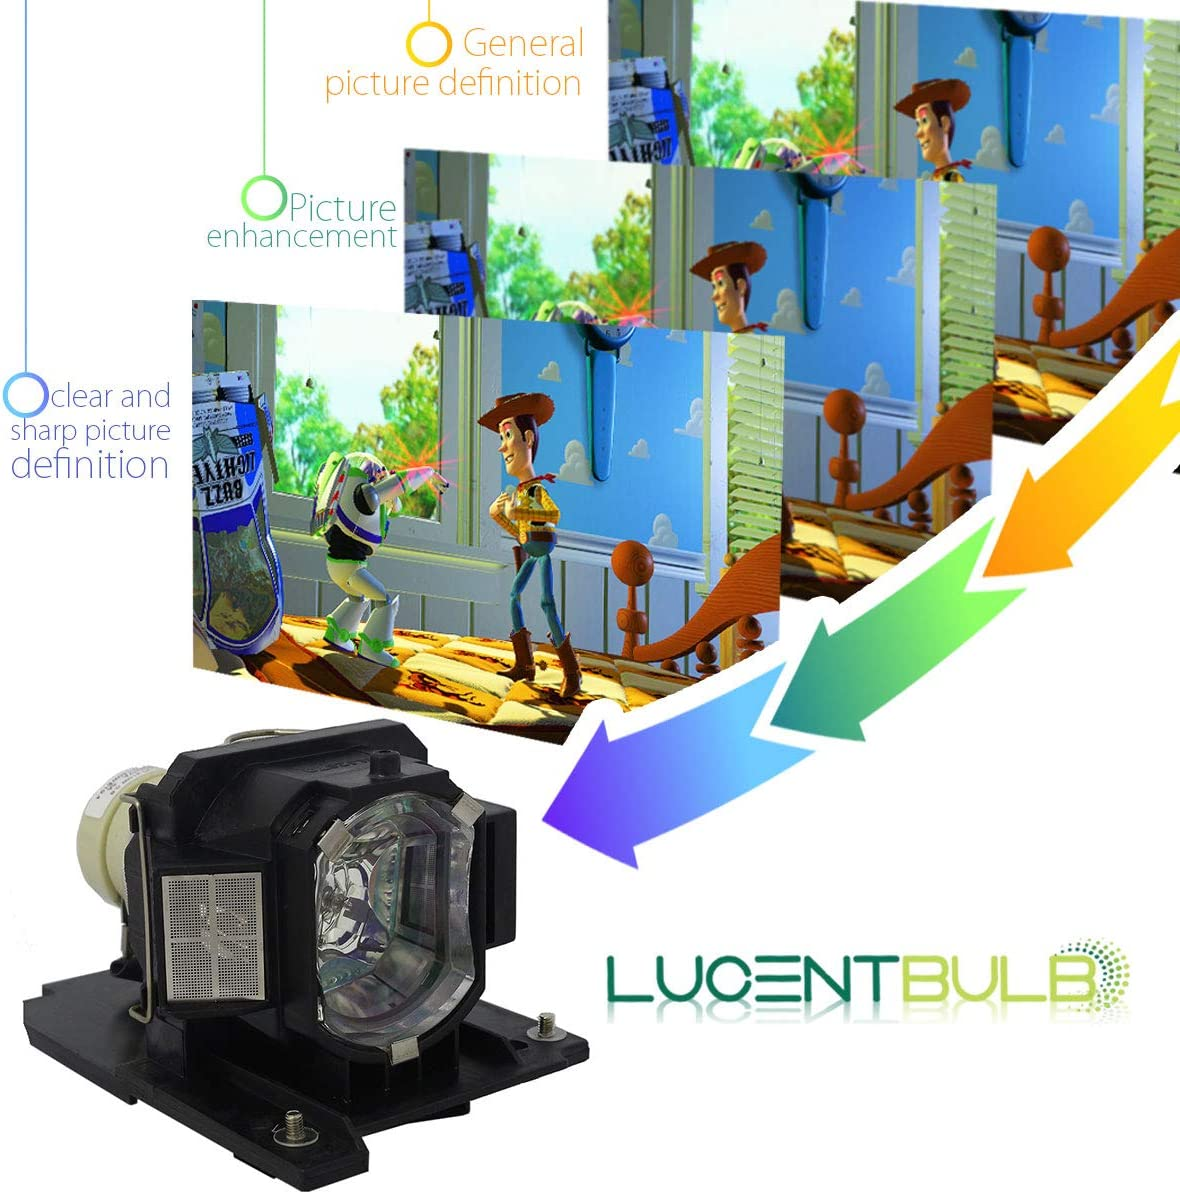 for Hitachi DT01291 Lamp Catridge by LucentBulb fits CP-WU8450 CP-WUX8450 CP-WX8255 CP-X8160 LW551i LWU501i LX60